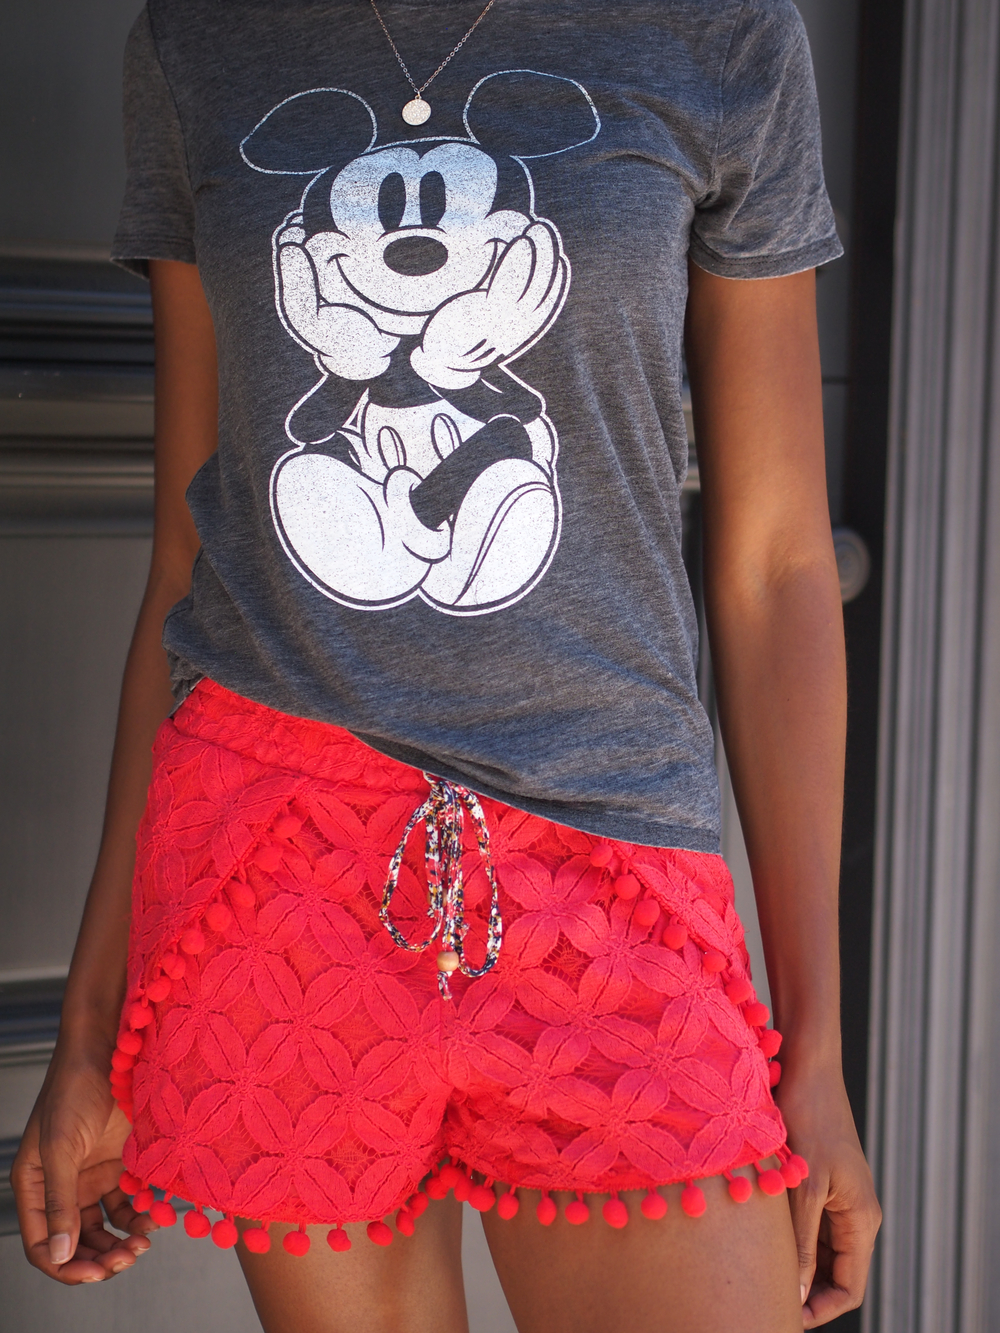 I am a Big Fan of Mickey Mouse... That is all!!!